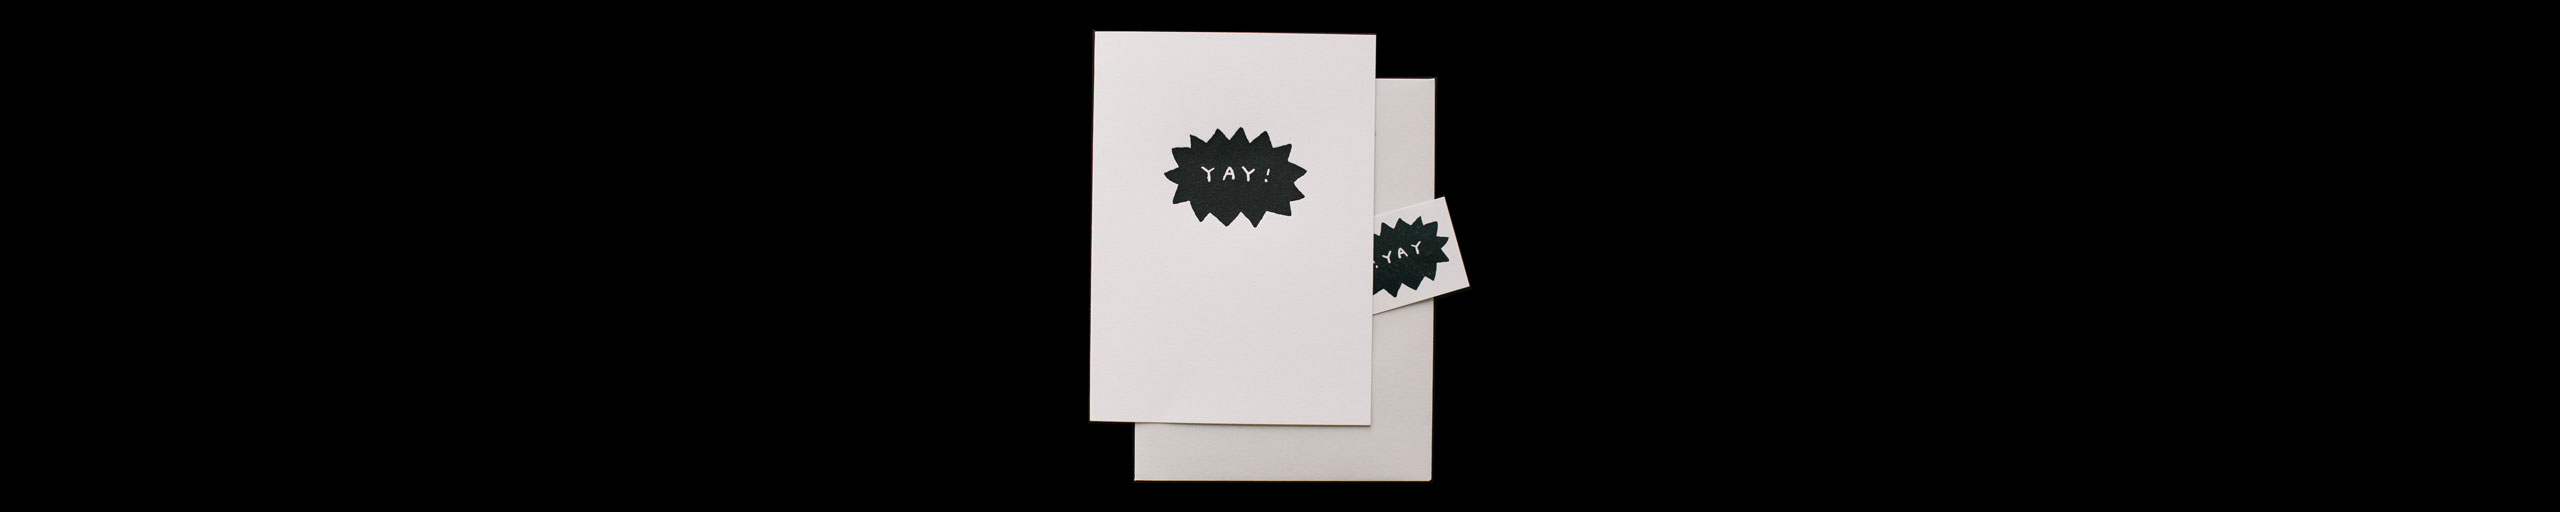 Tattly Cards: One Real Card, One Fake Tattoo